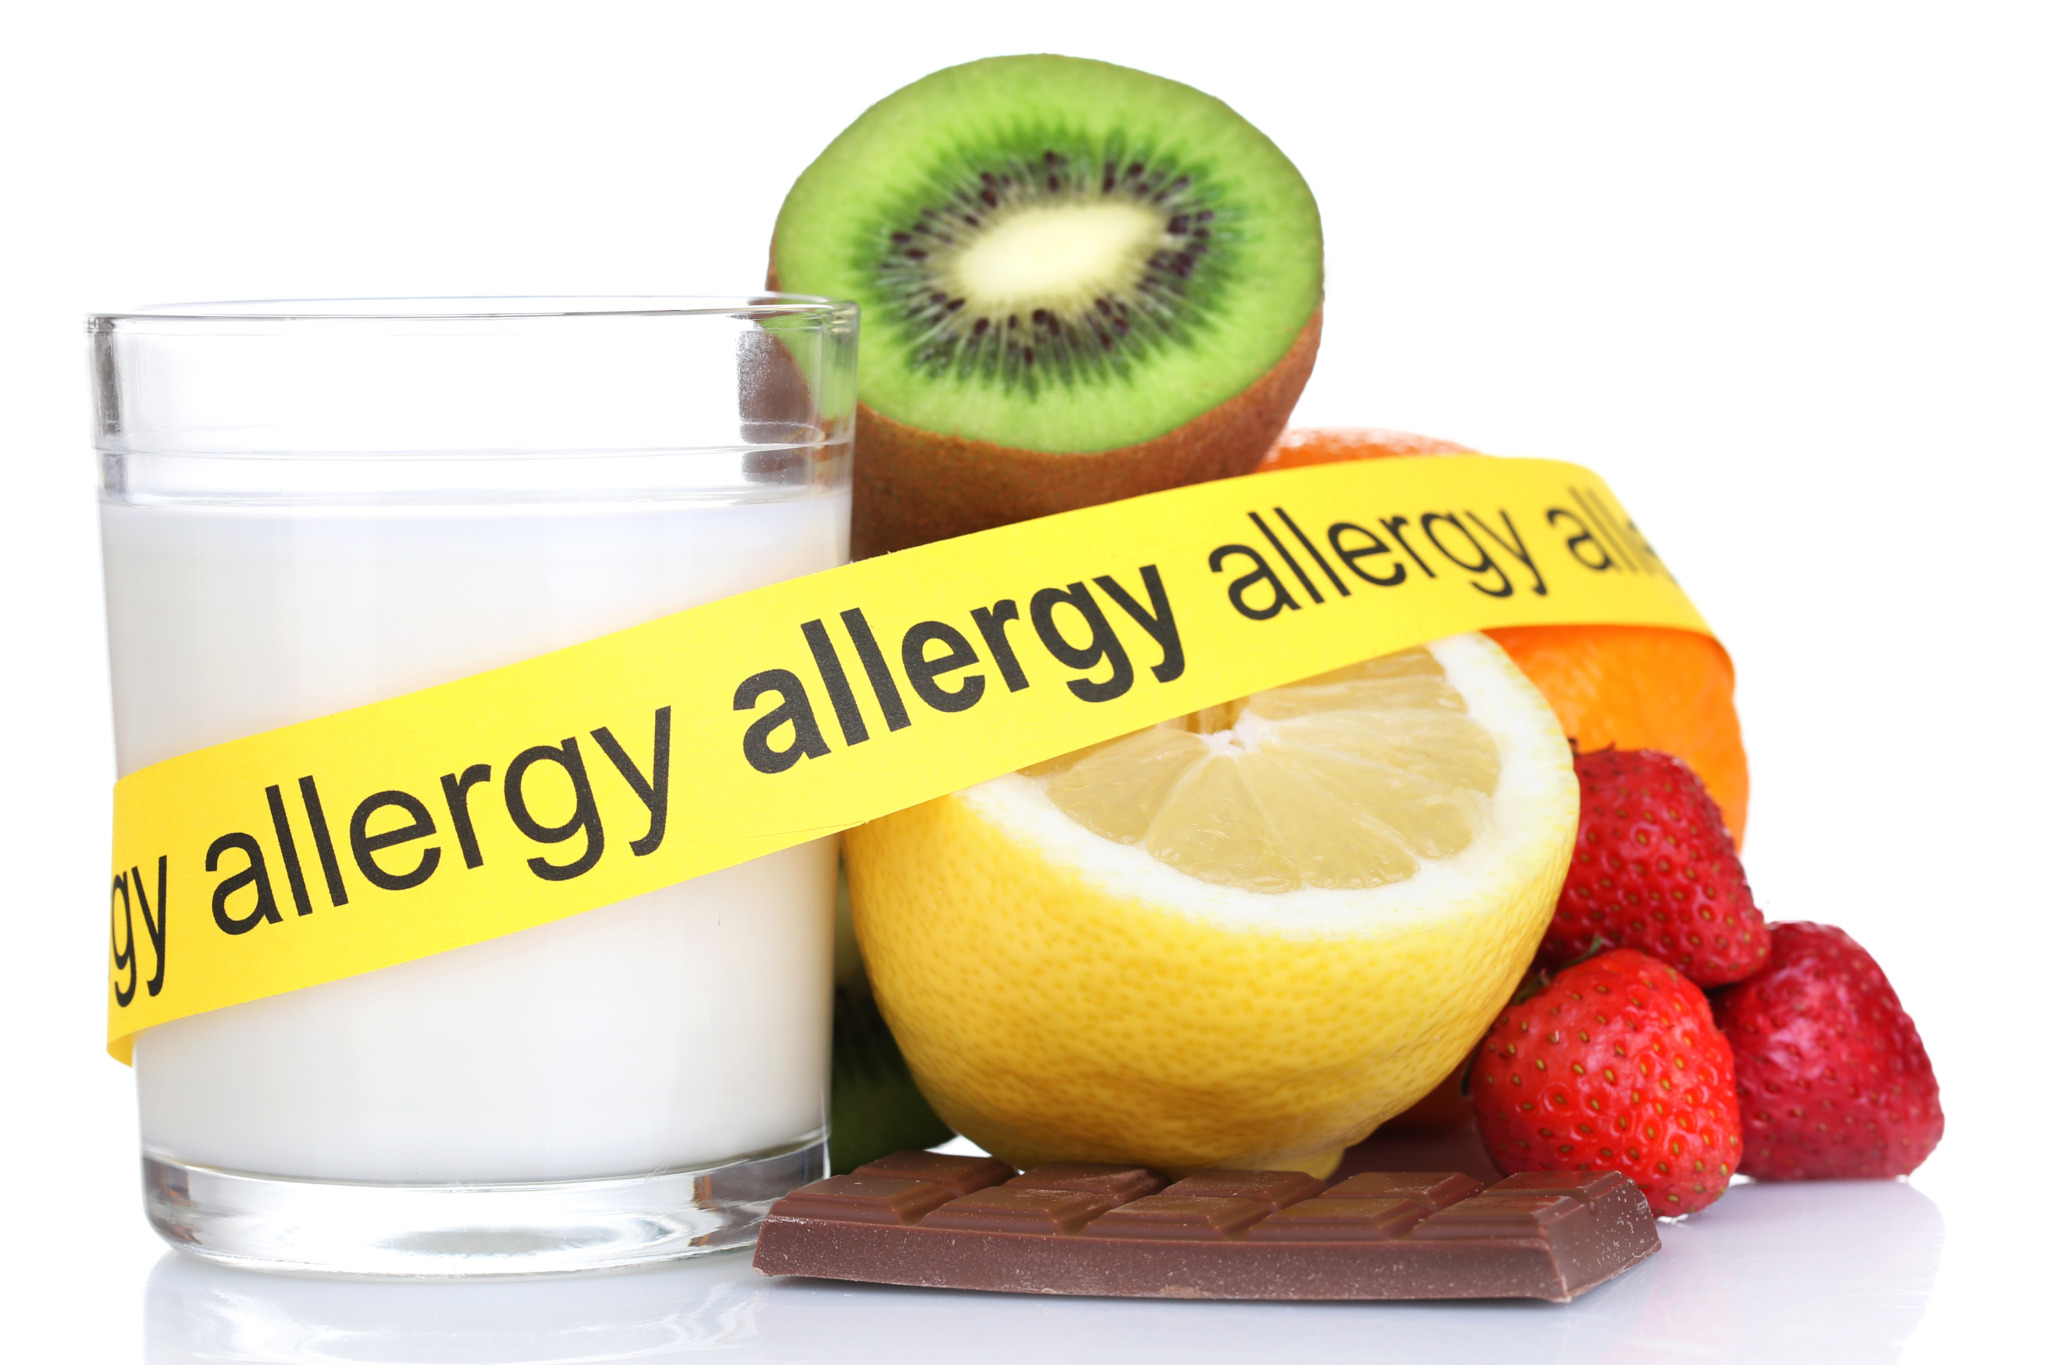 Allergies with Kaiser Permanente Shutterstock Image: 195397382 by Africa Studio Sponsored